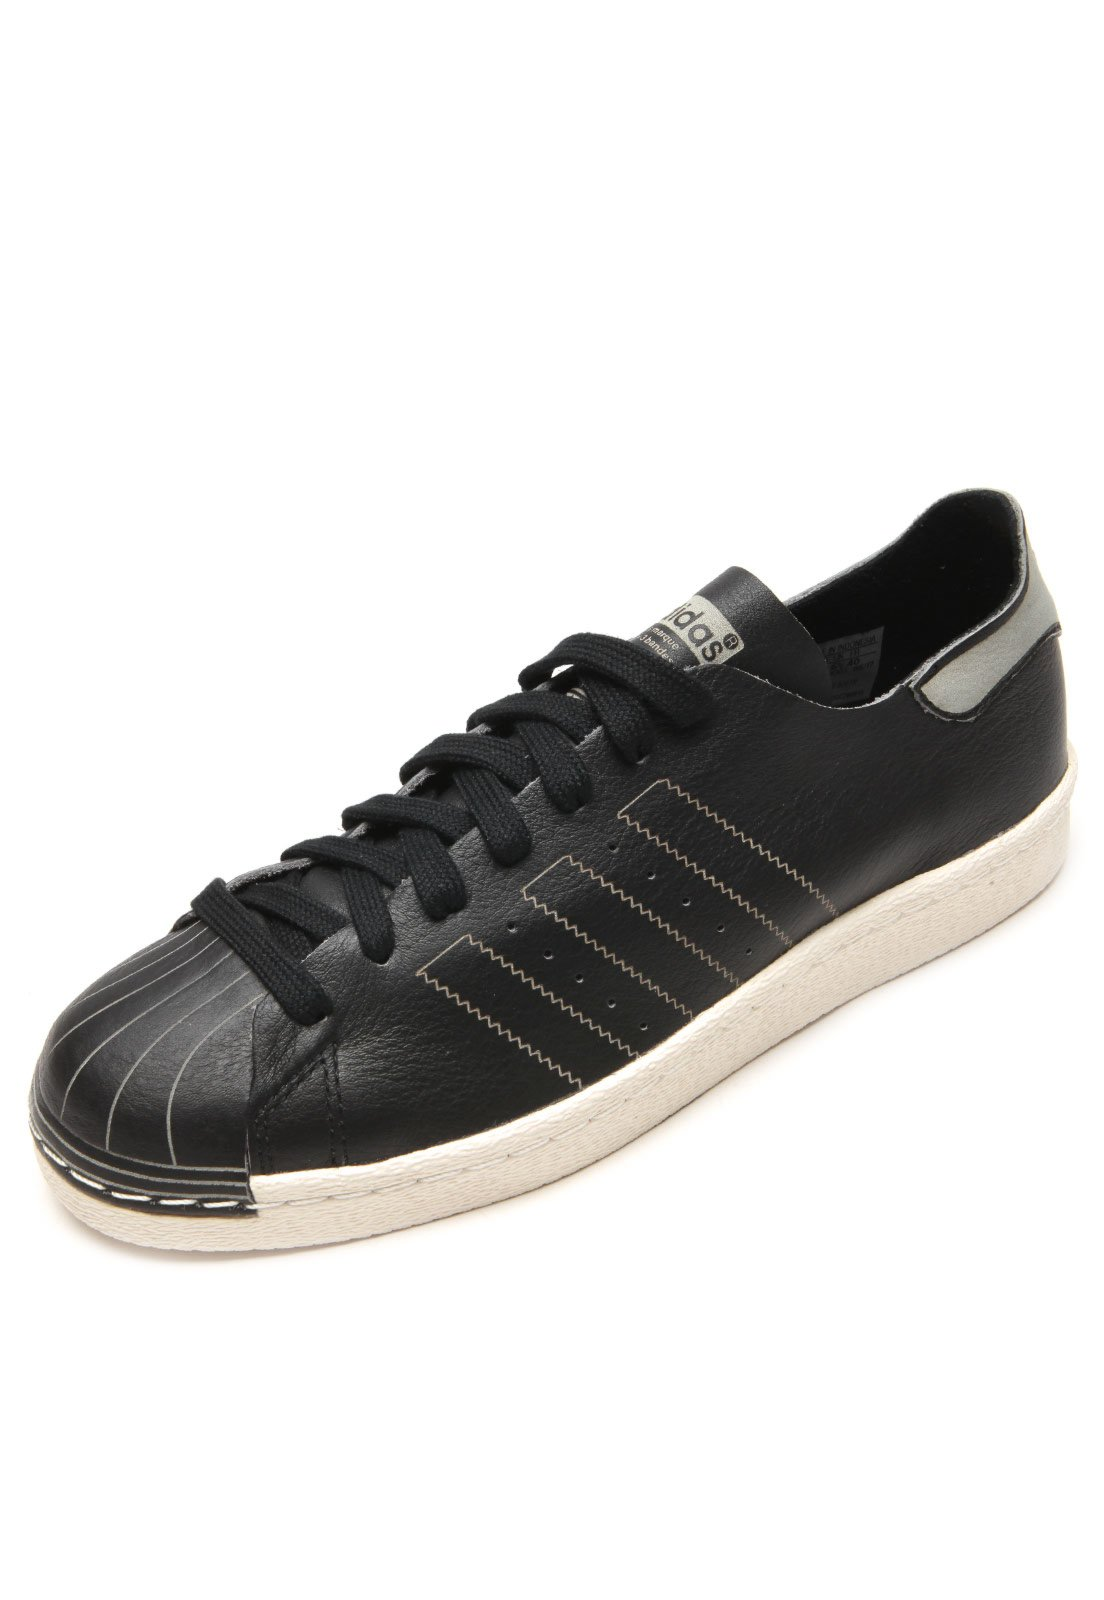 00f84953c55 adidas Originals. Tênis Couro adidas Originals Superstar 80S Decon Preto  Branco